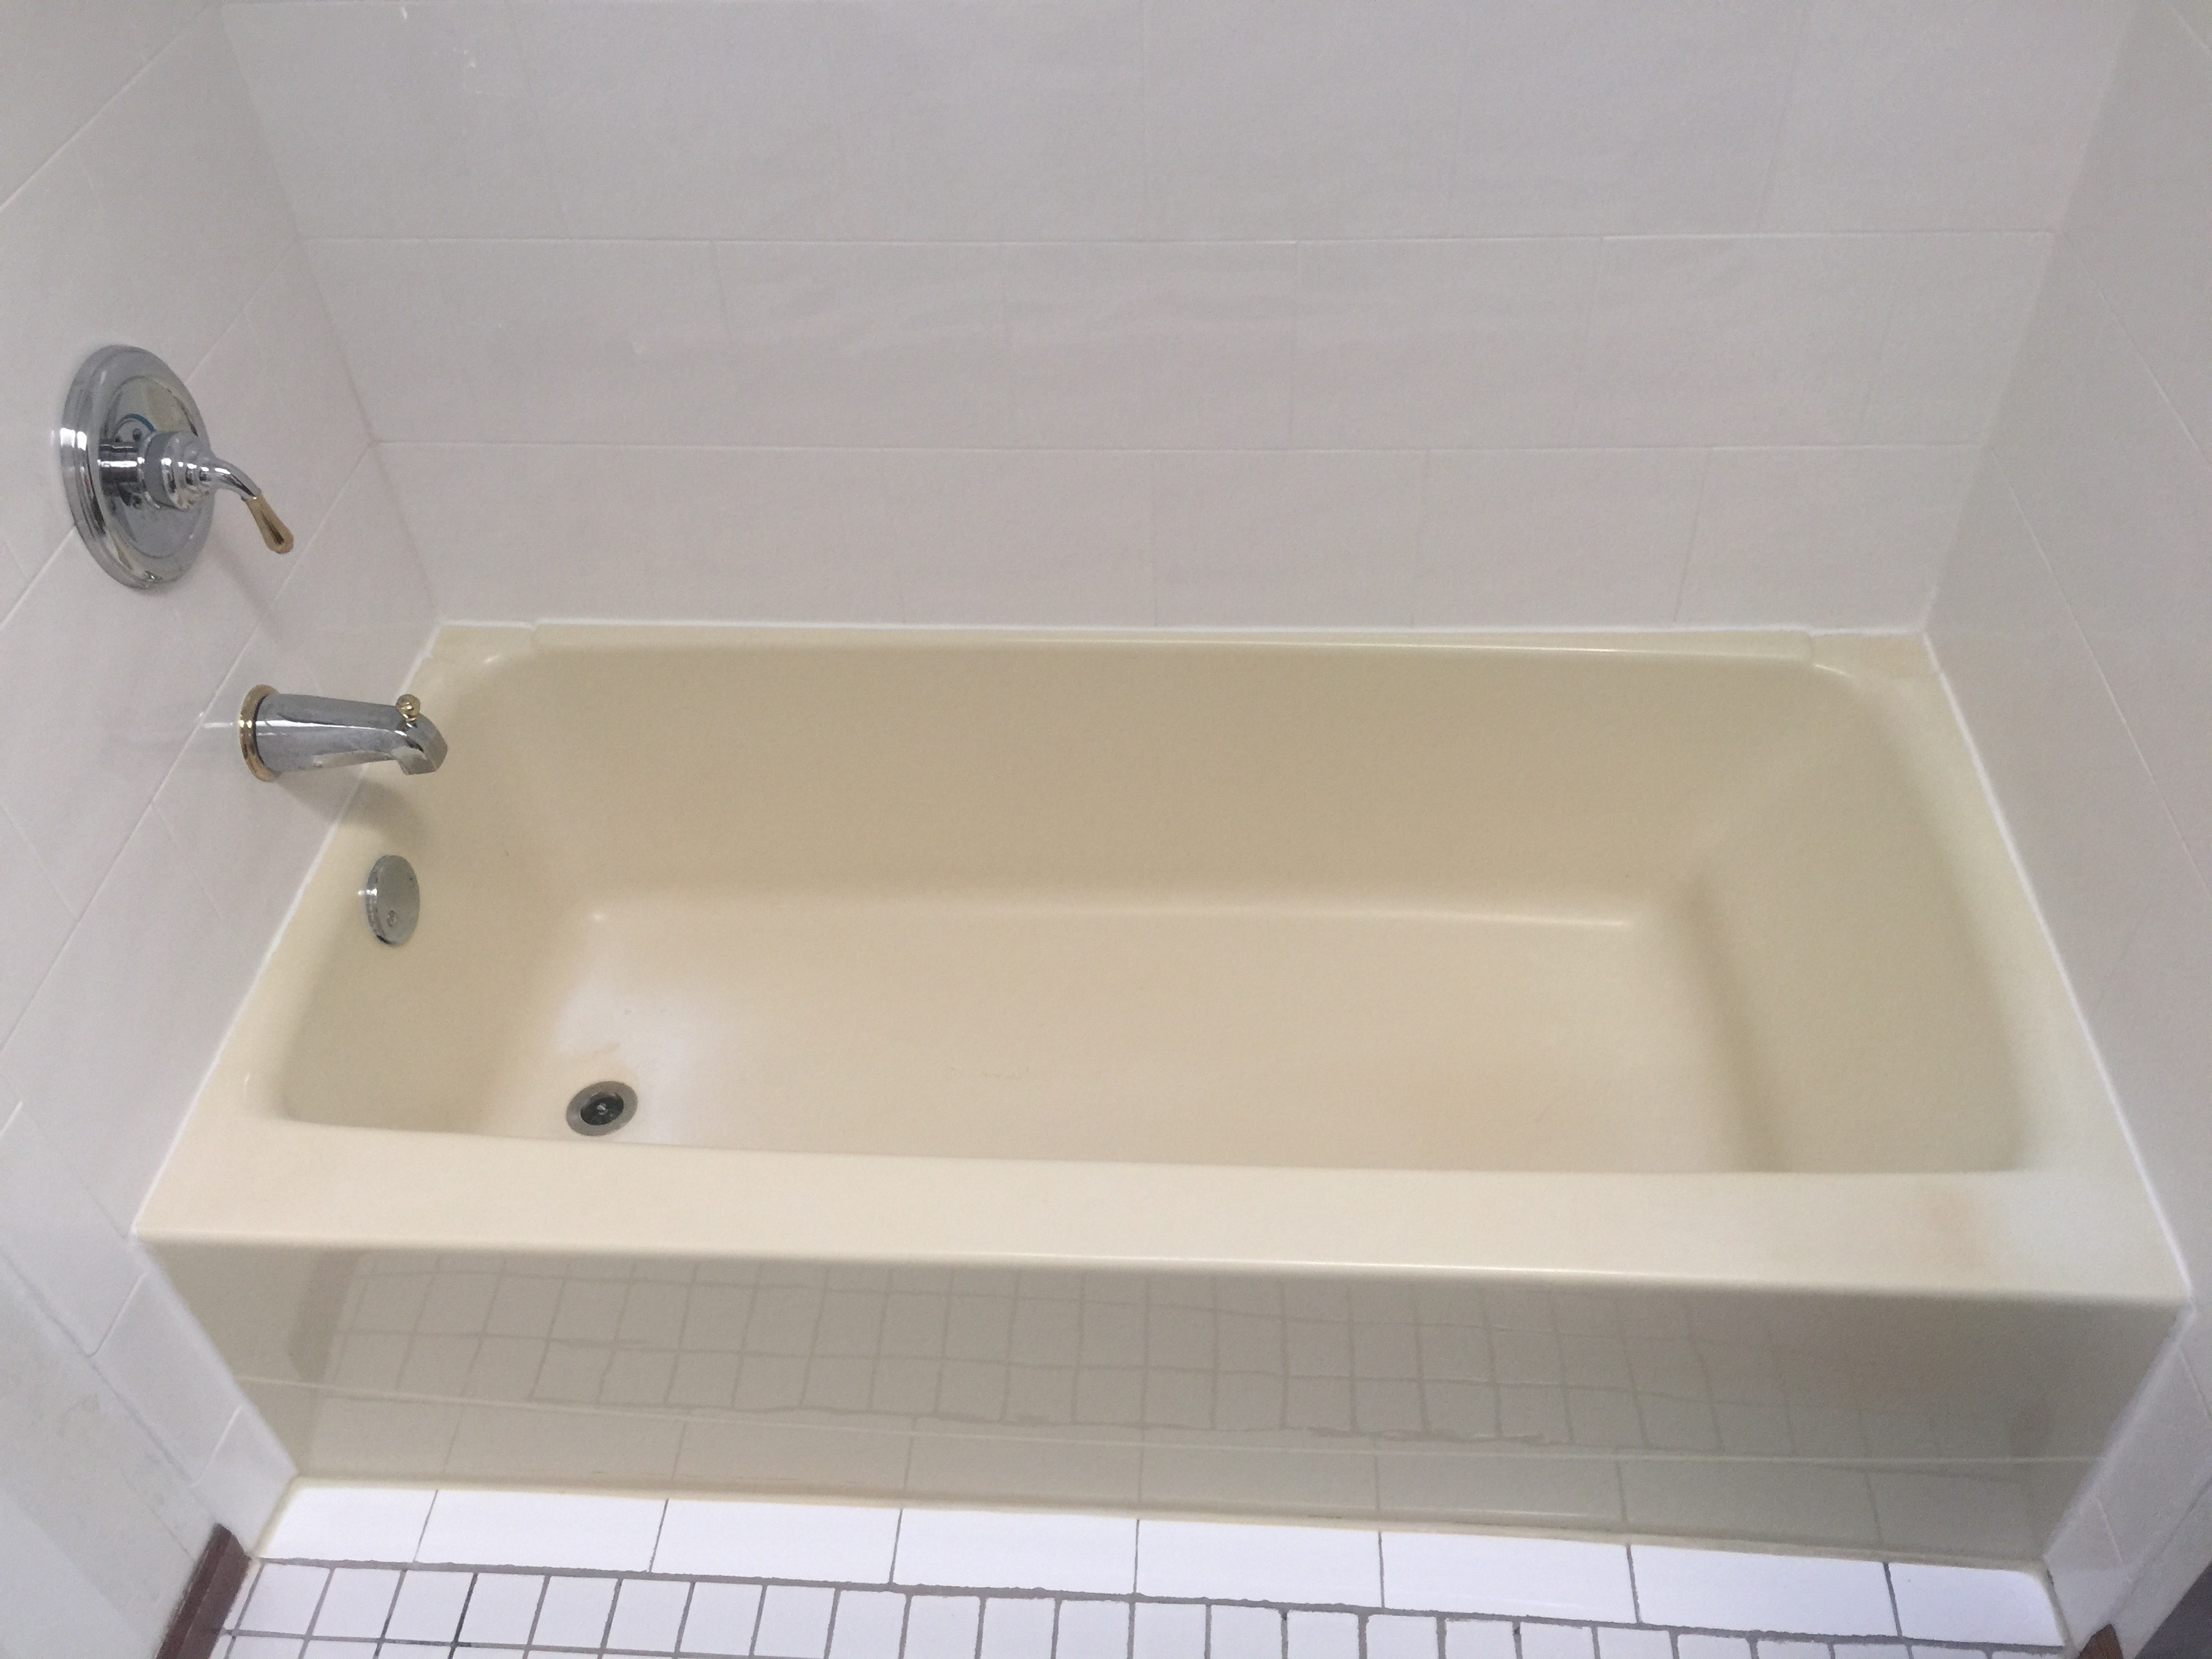 Acrylic tub yellowed with time